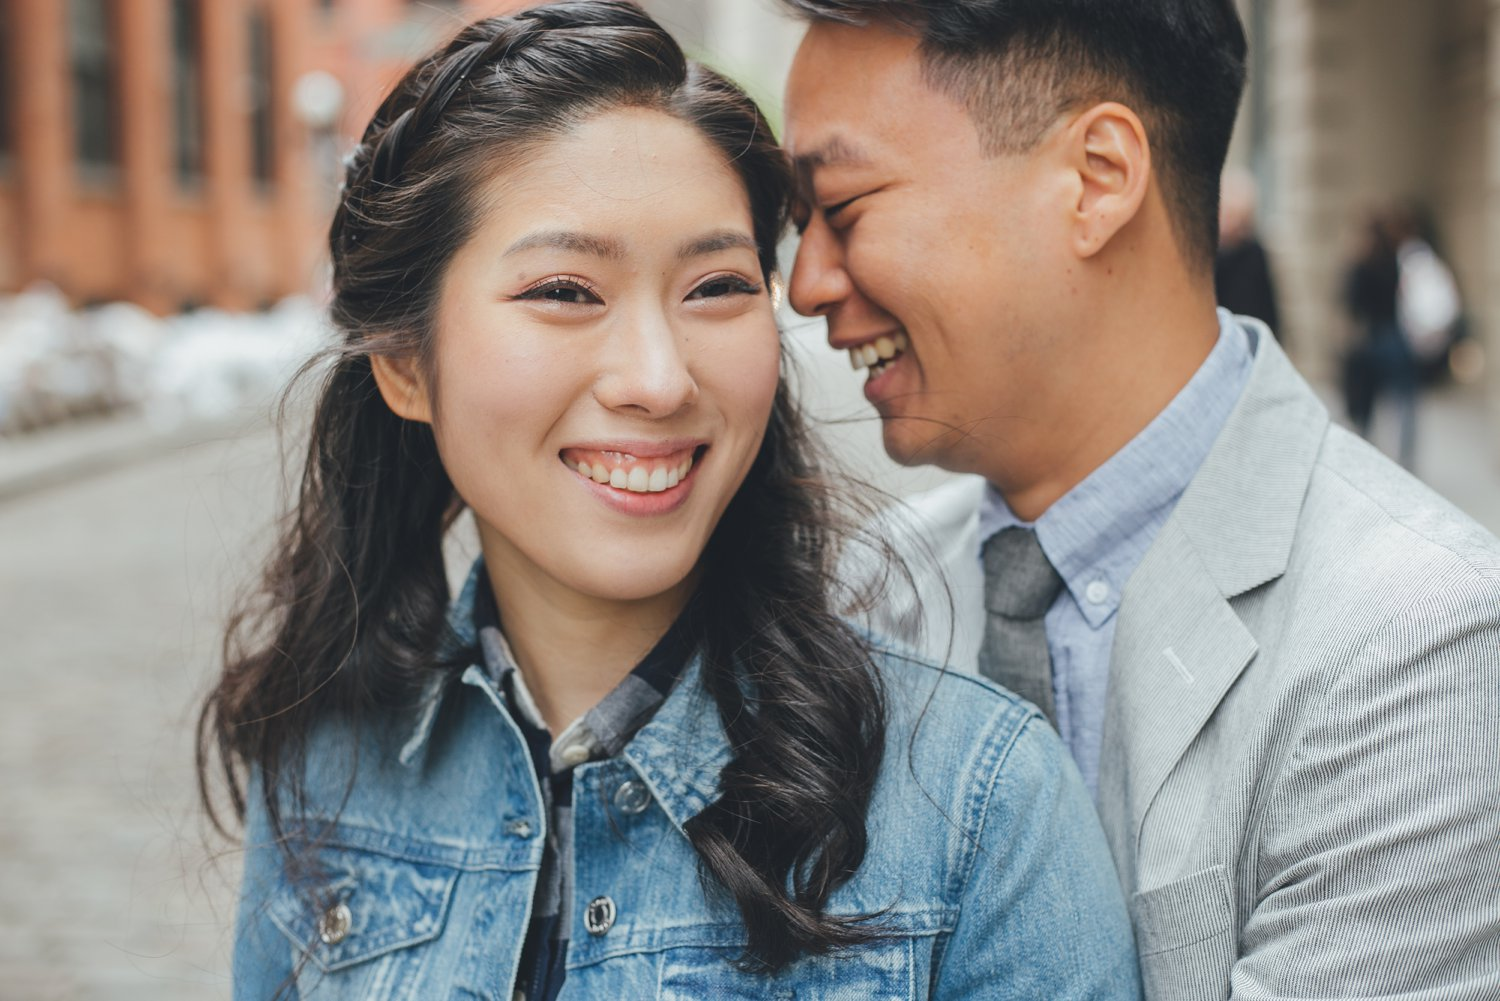 41NYC-NJ-ENGAGEMENT-PHOTOGRAPHY-BY-INTOTHESTORY-MOO-JAE.JPG